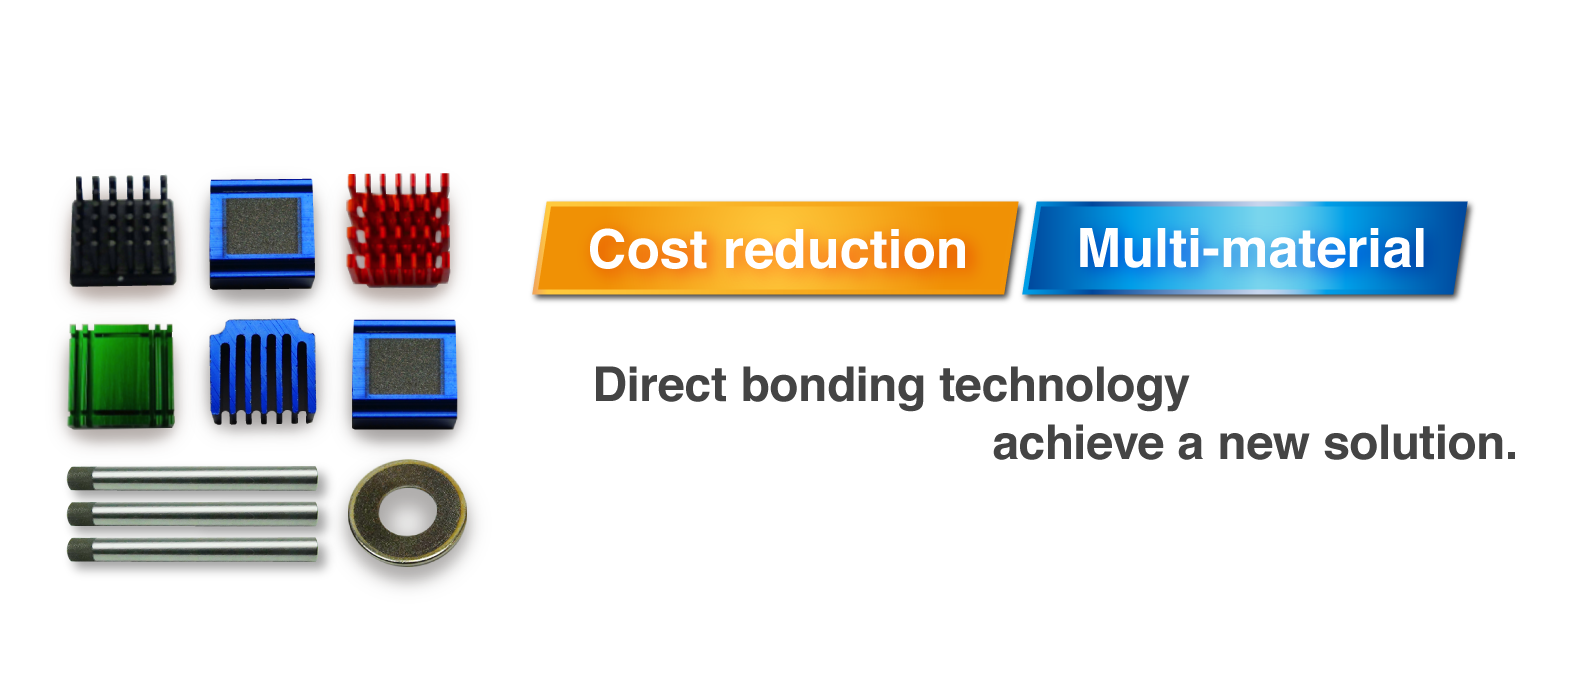 Direct bonding technology achieve a new solution.